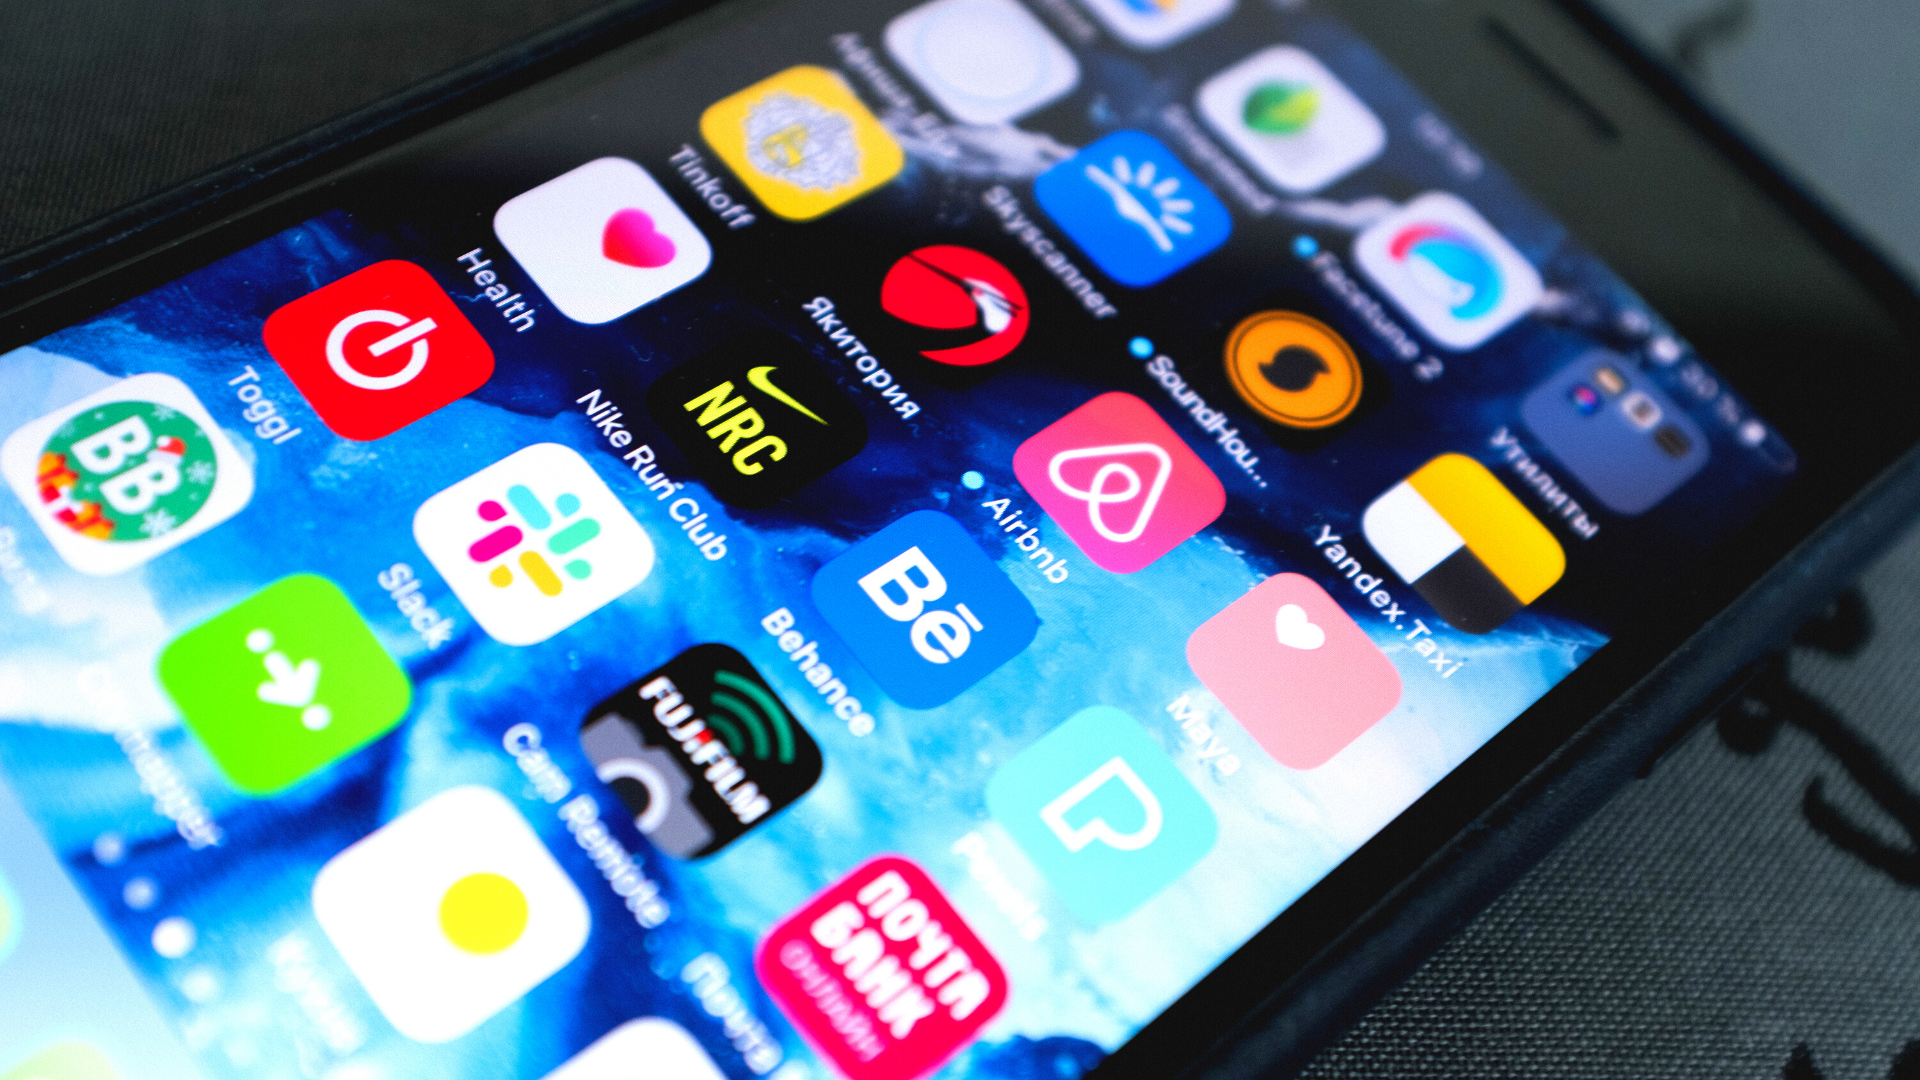 It's not too late to protect your contact lists from mobile apps